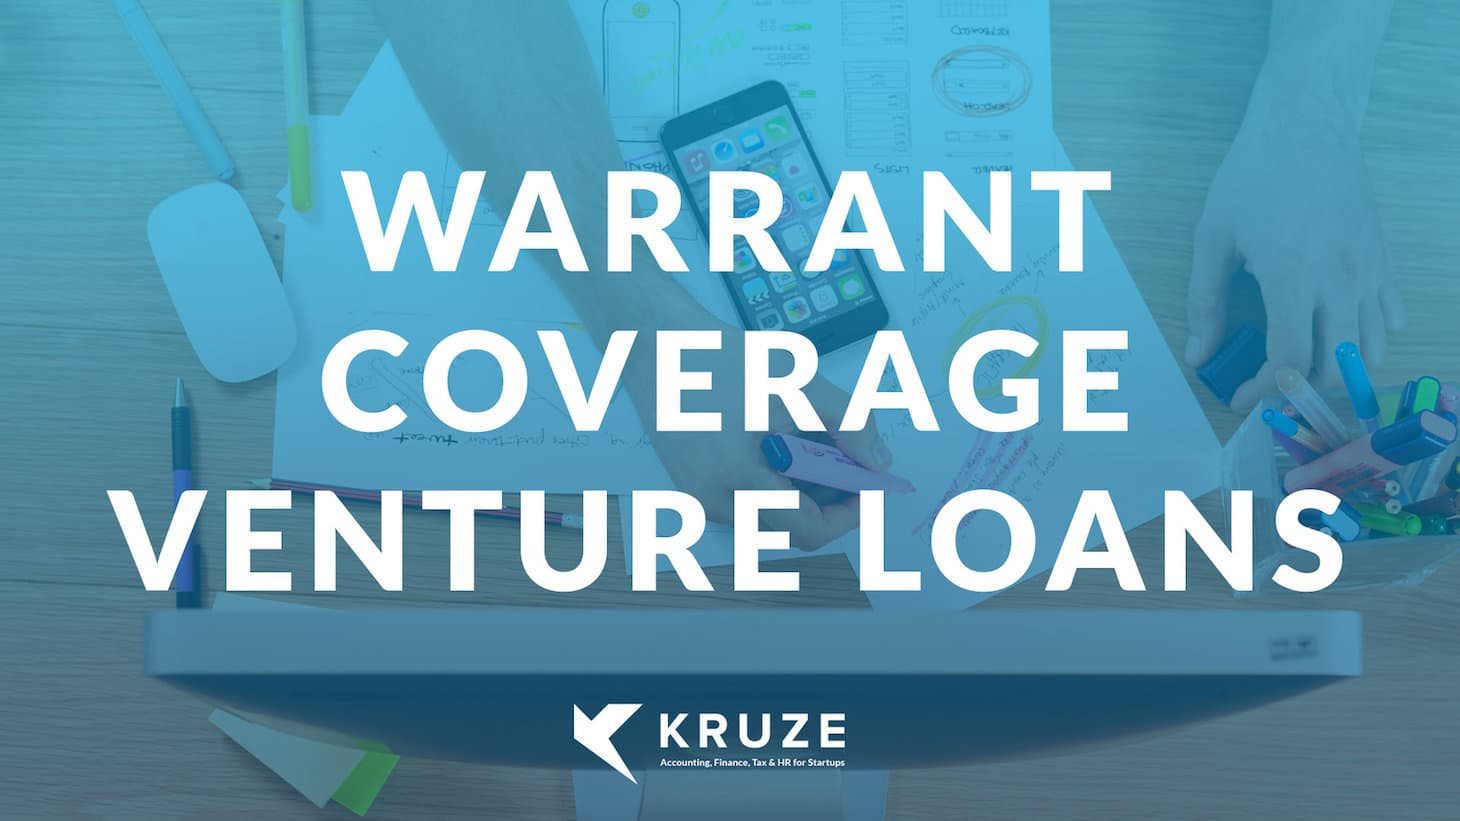 Warrant Coverage Venture Loans